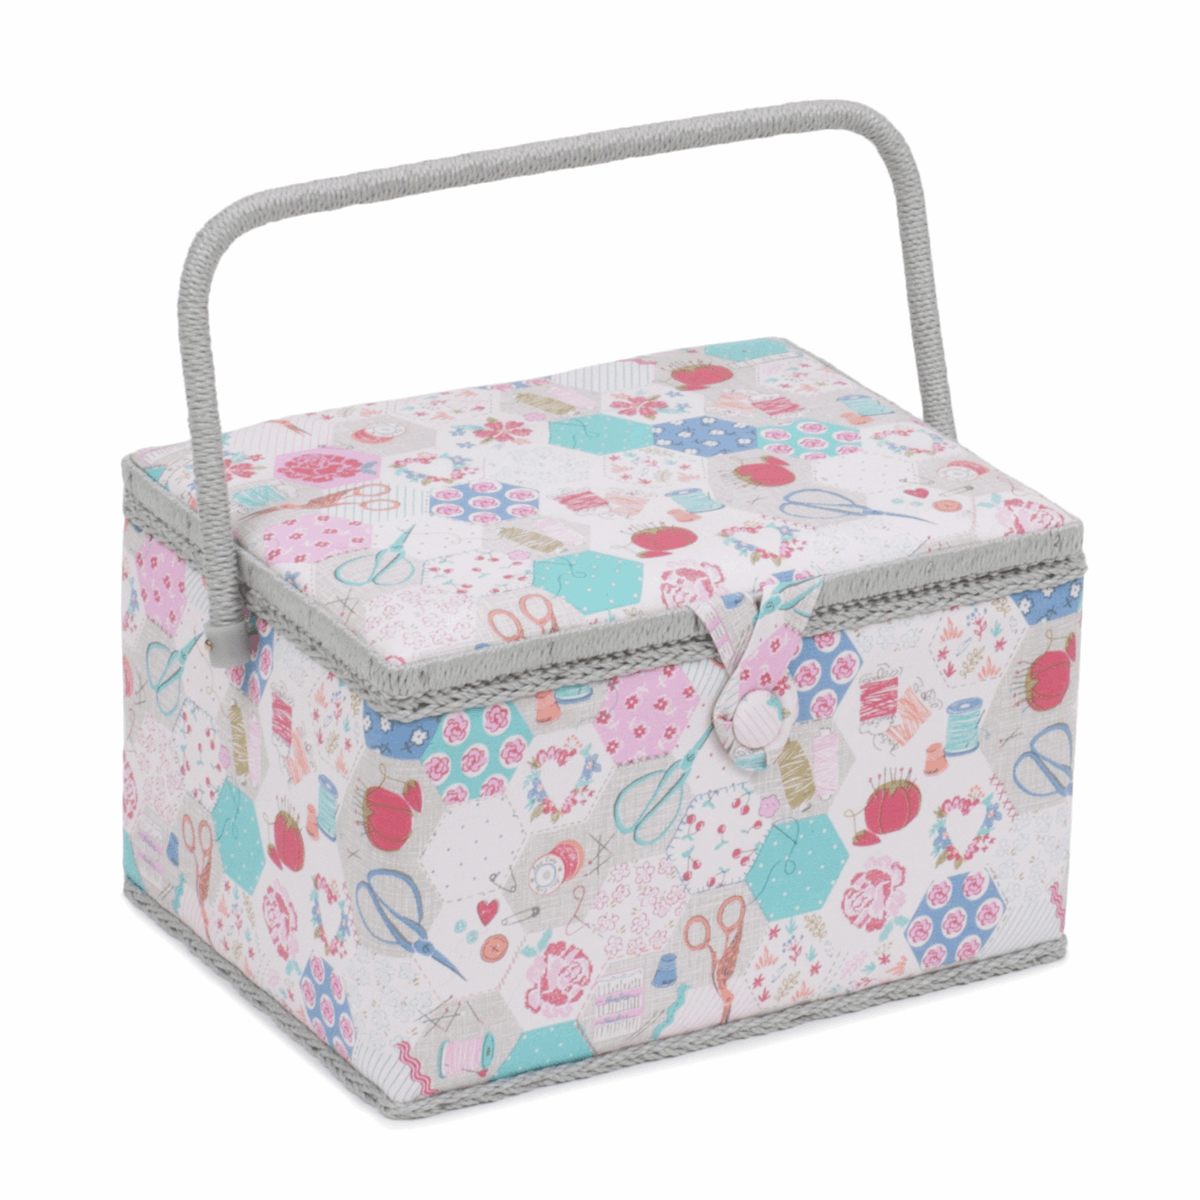 Picture of Sewing Box (L): Notions